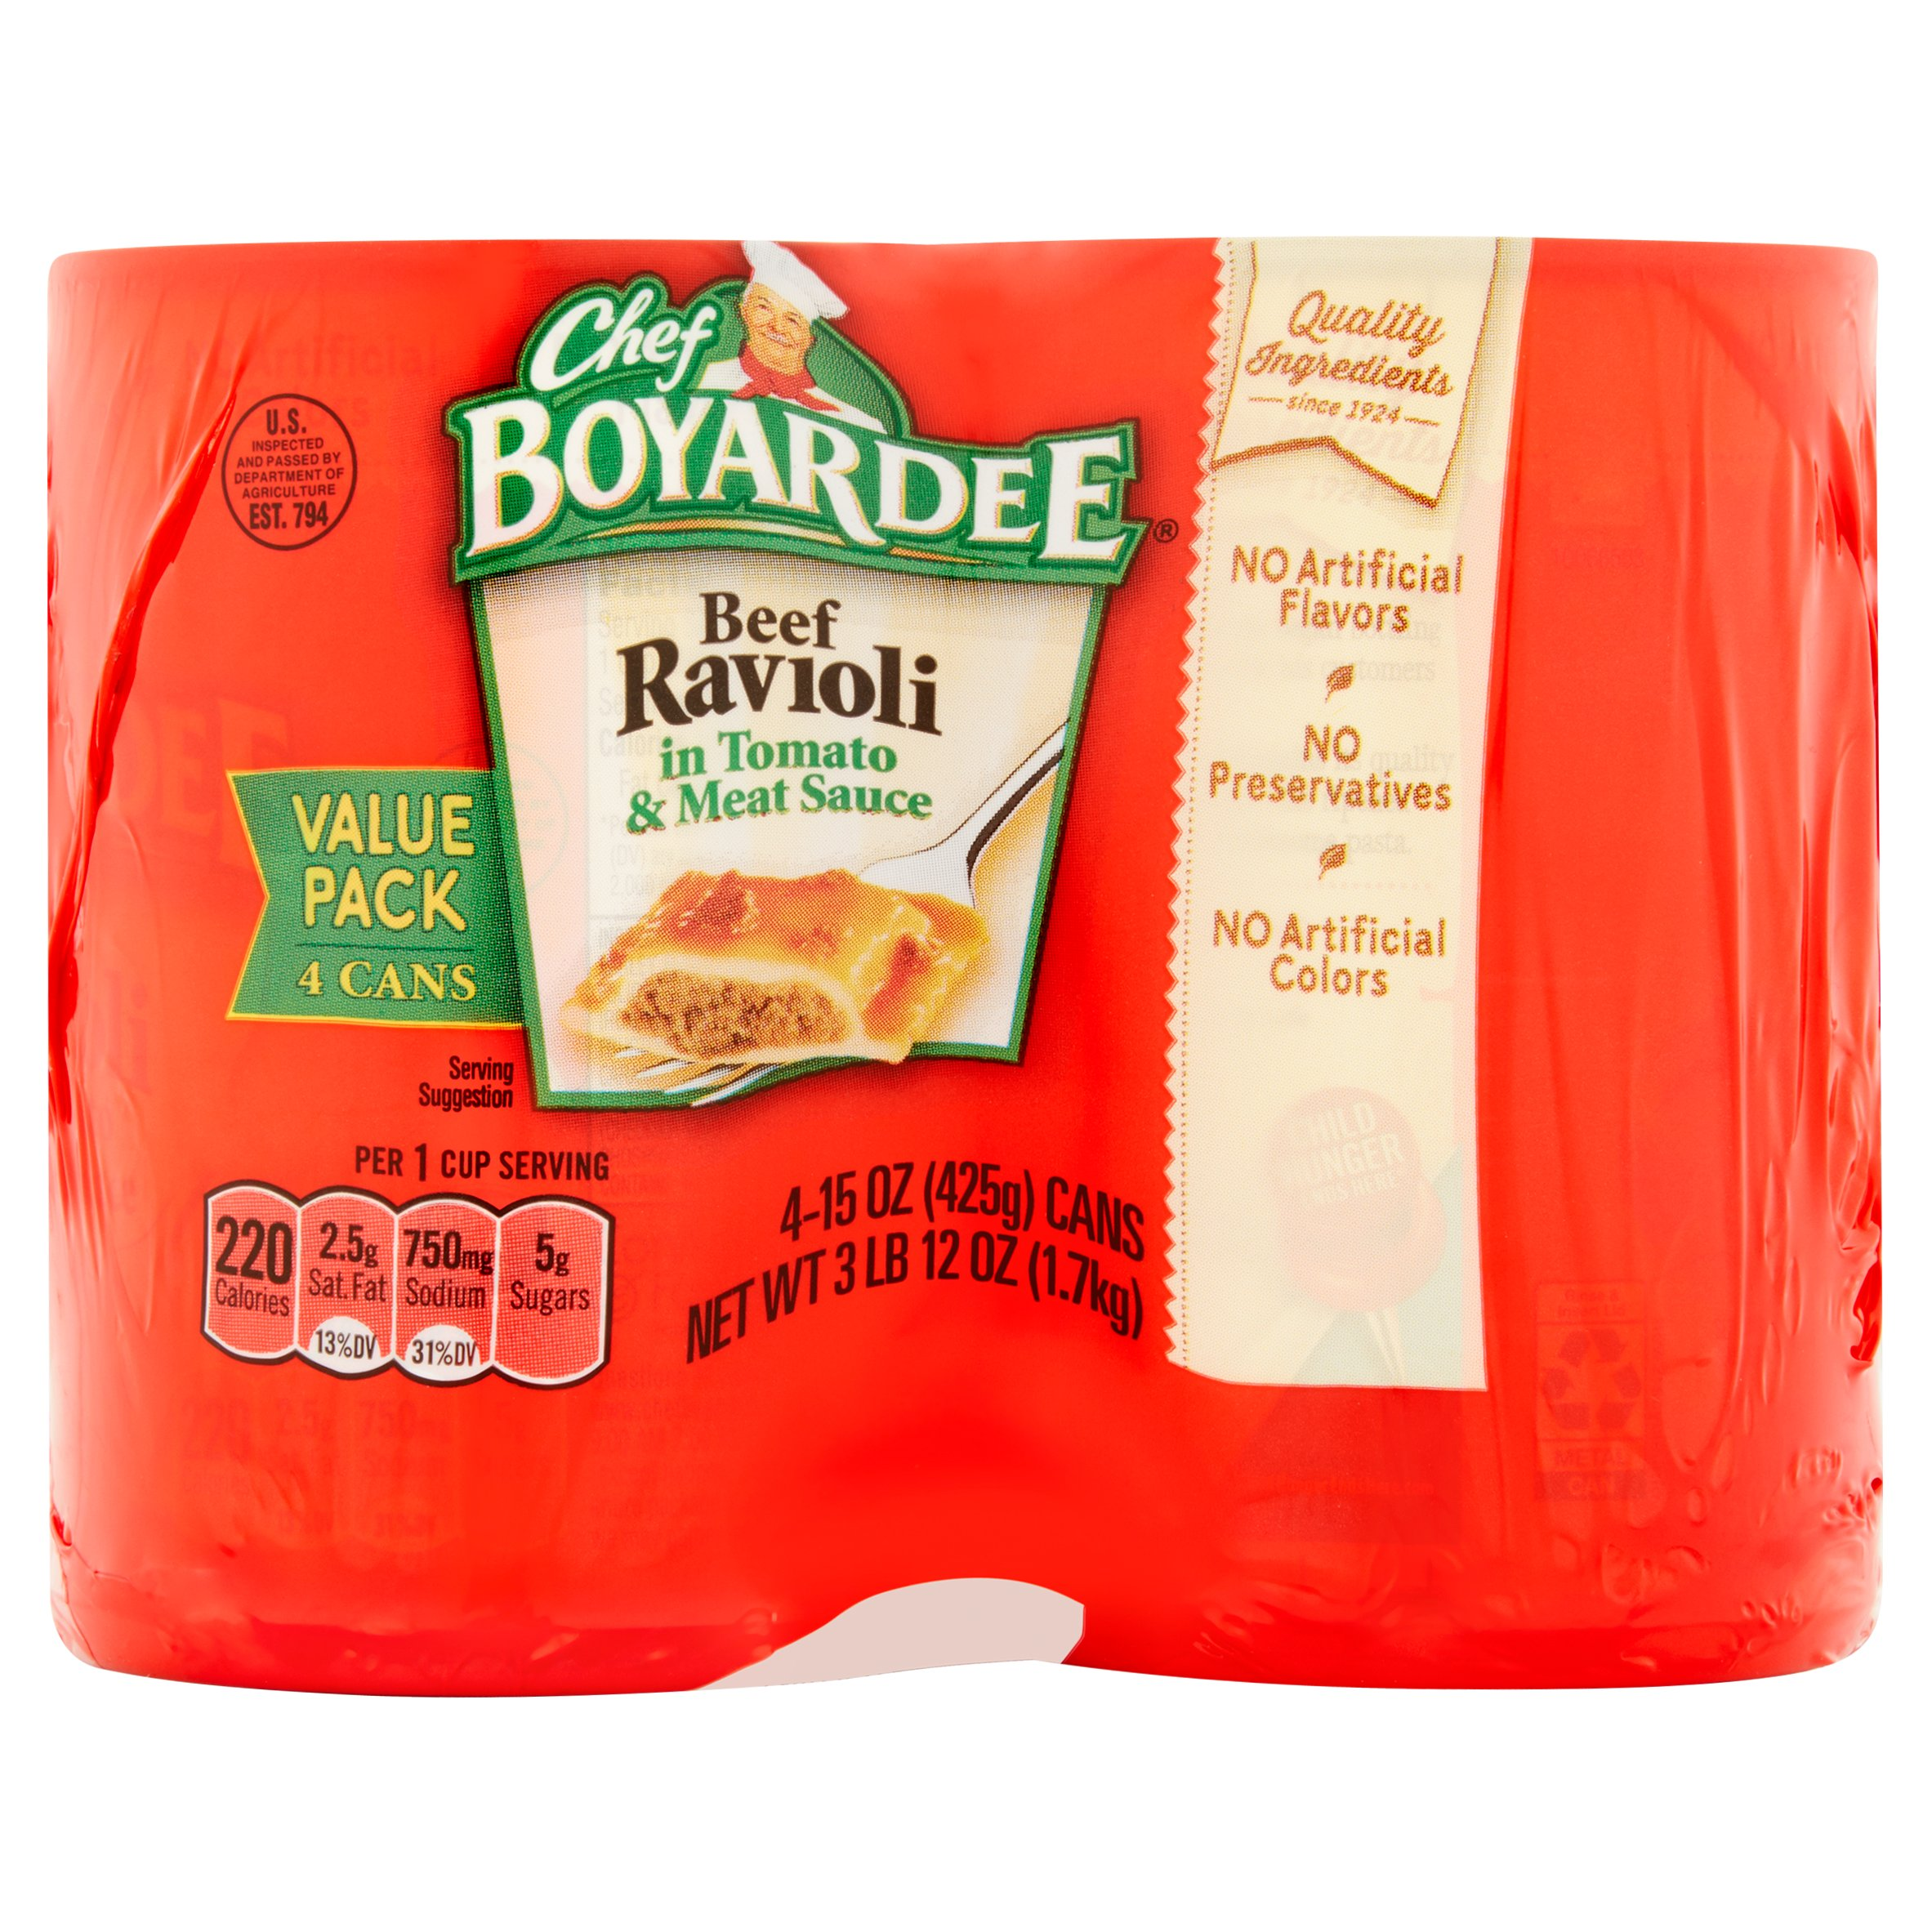 Chef Boyardee In Tomato & Meat Sauce 15 Oz Beef Ravioli, 4 Ct by Conagra Foods